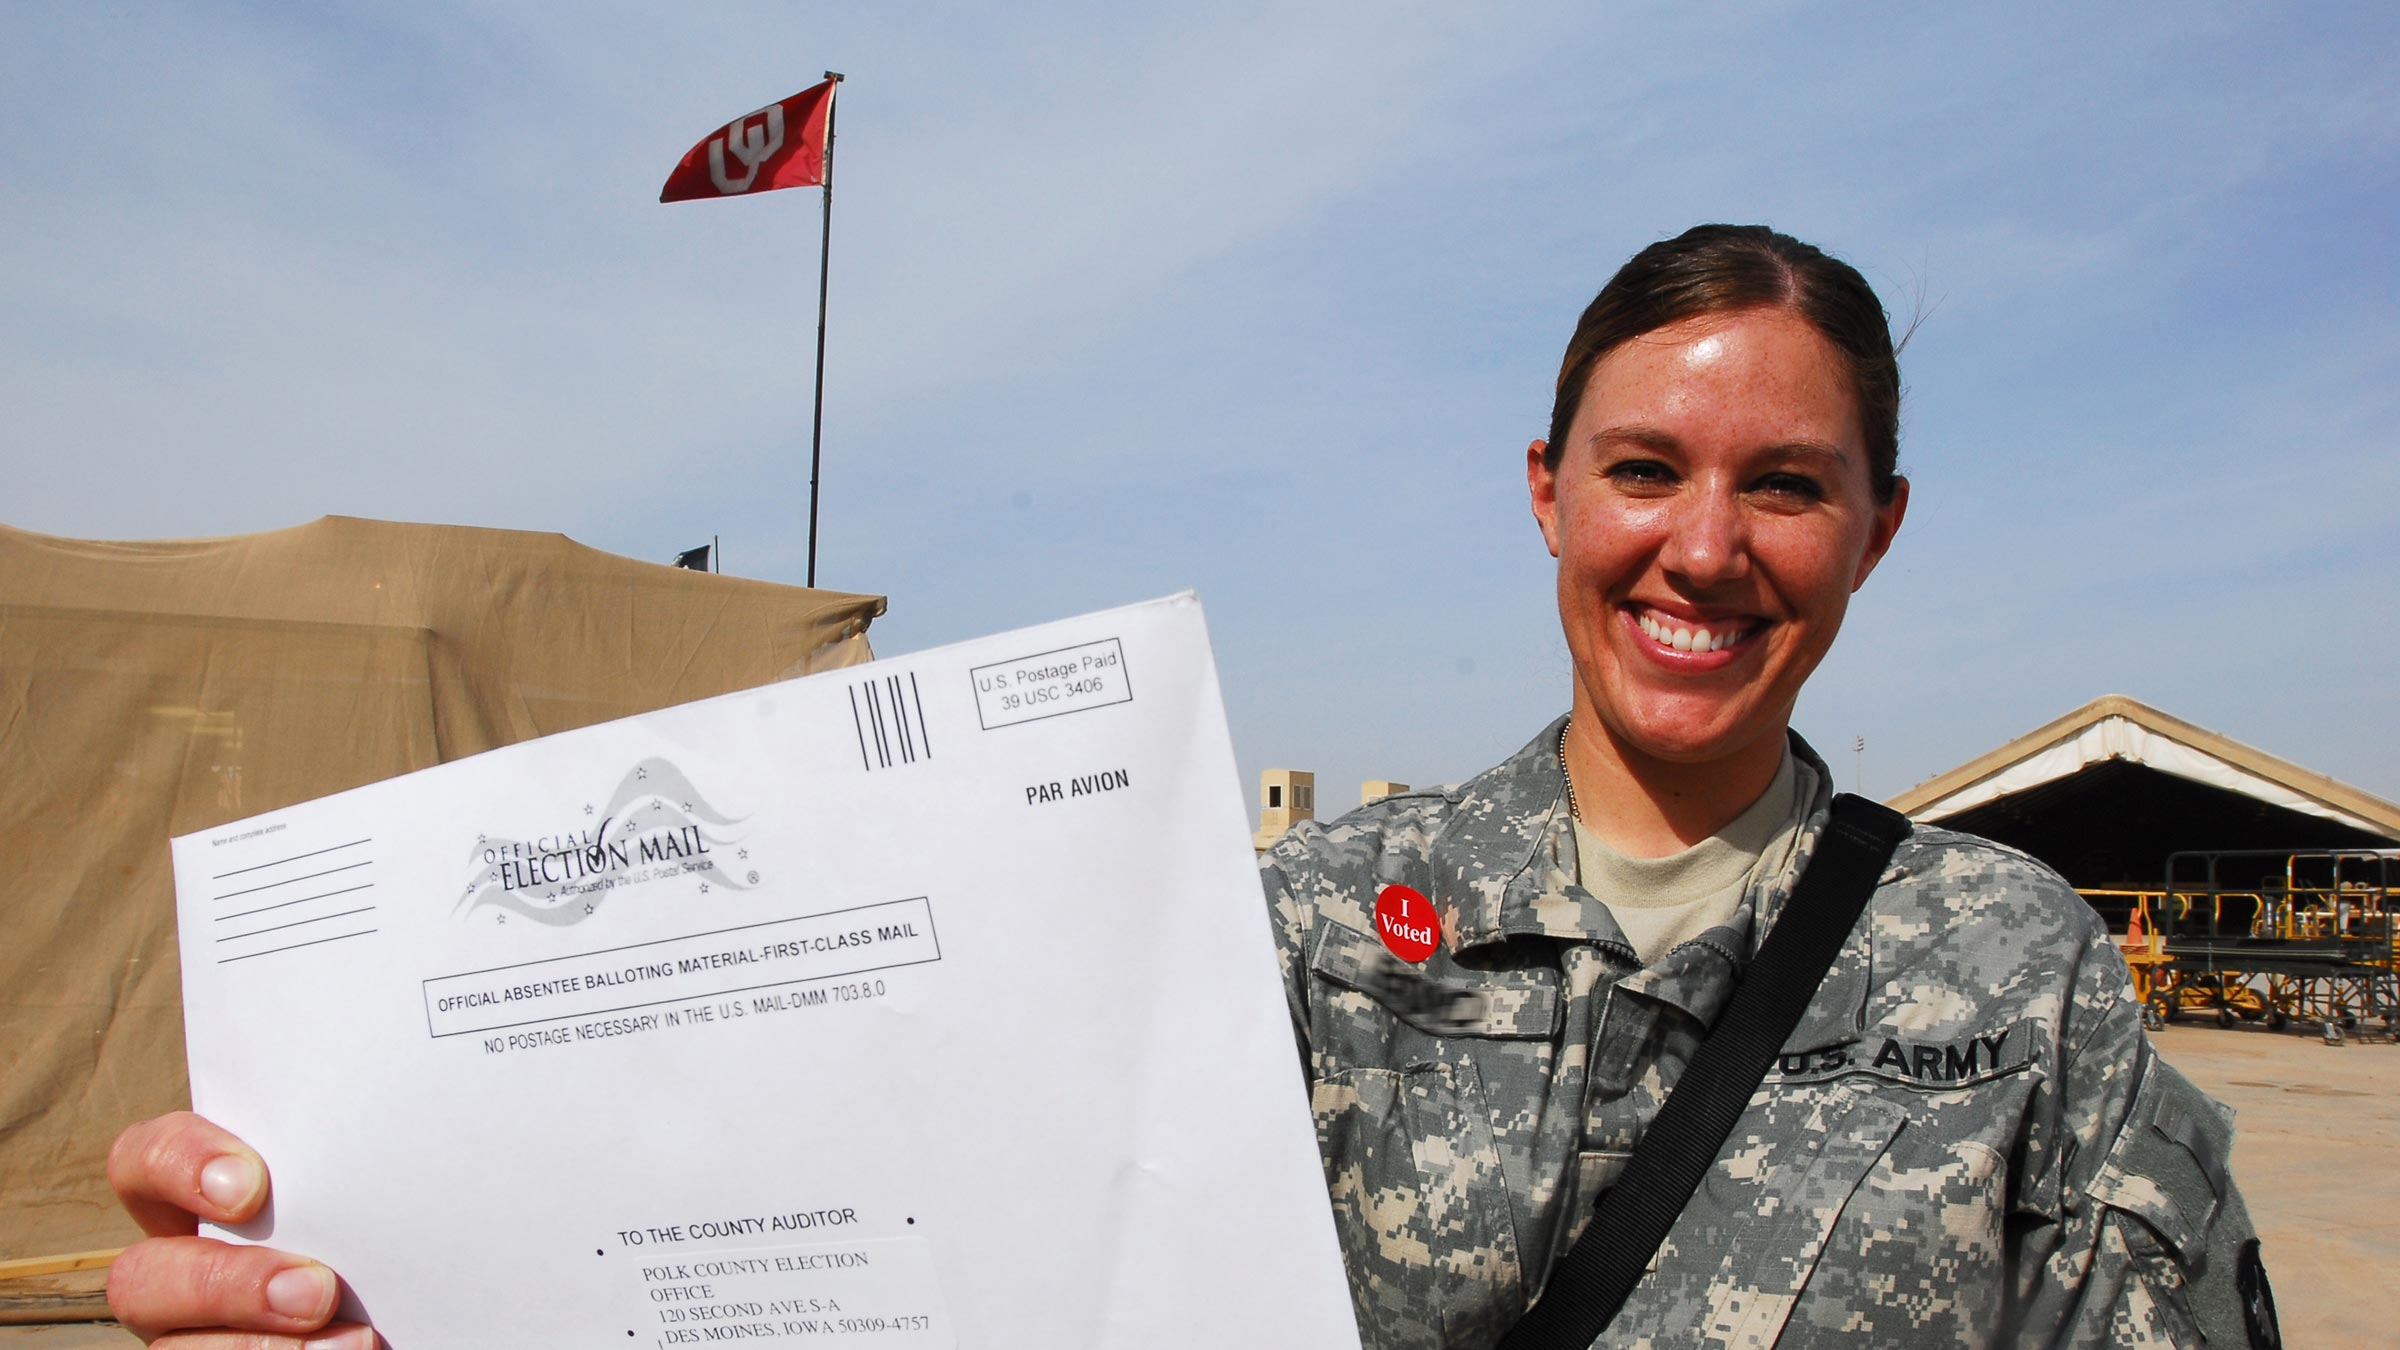 Service member holds up voting ballot